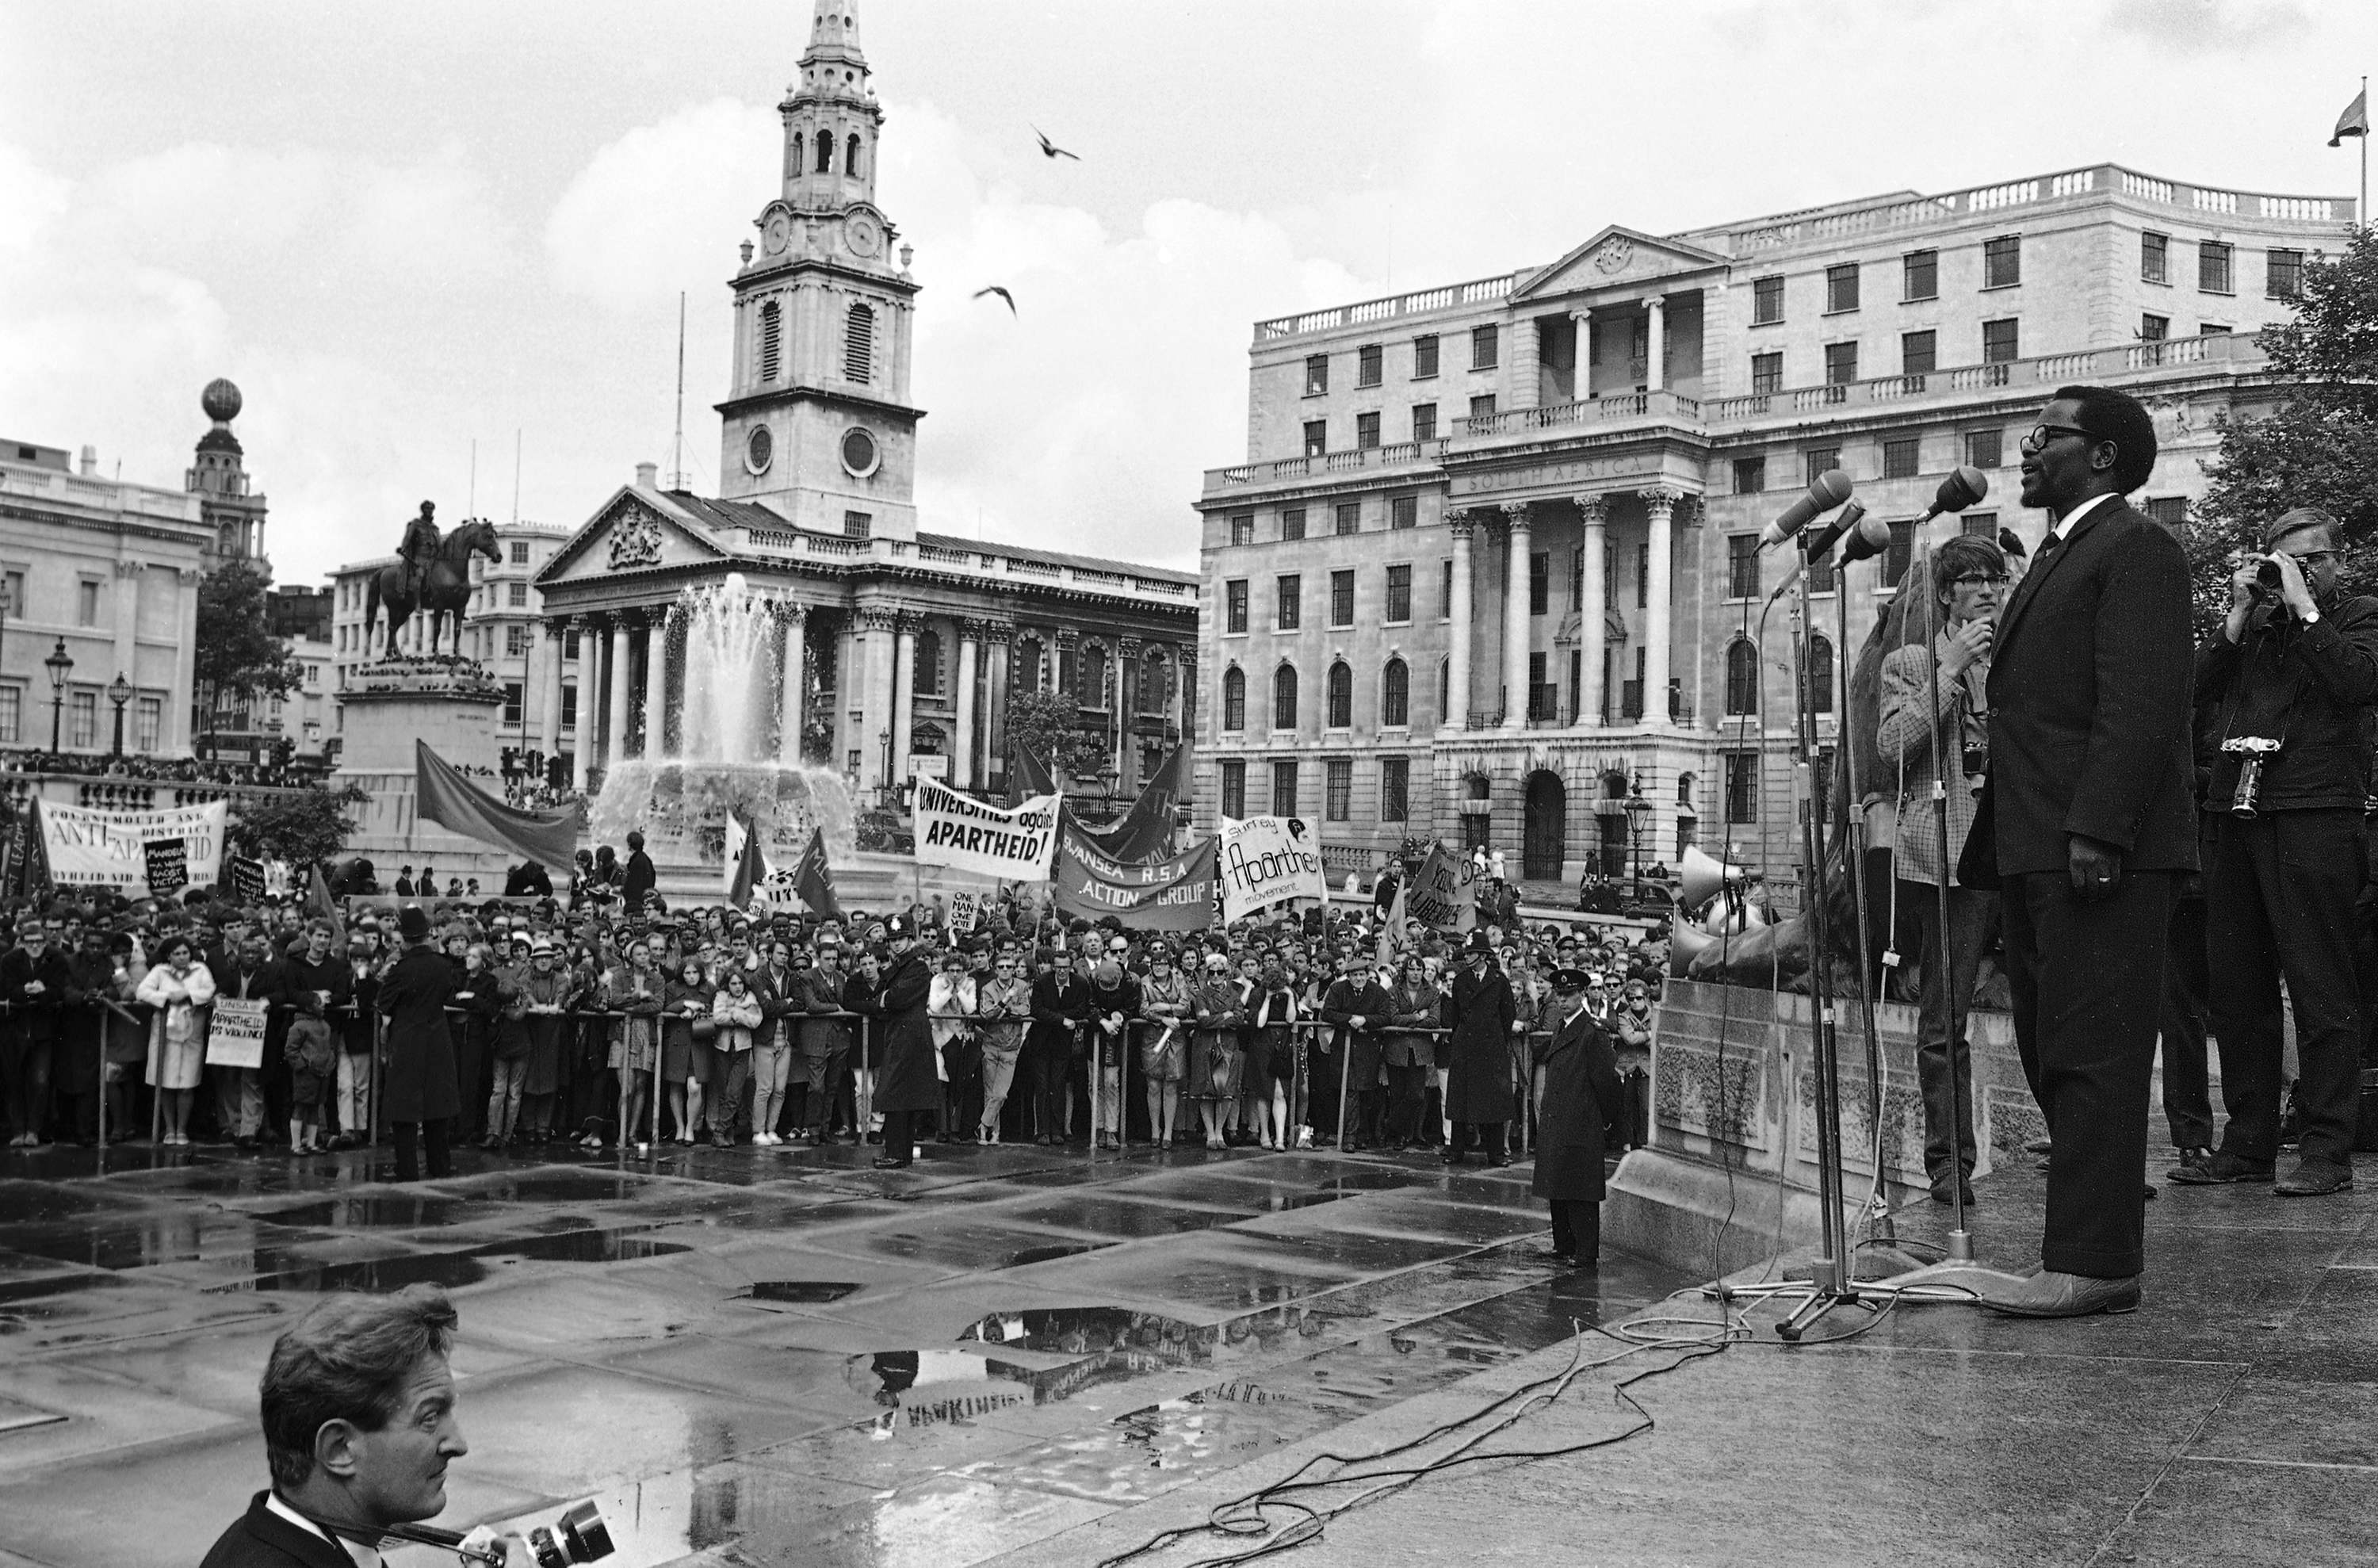 Oliver Tambo, acting President-General of South African Congress of South Africa, as he addresses members attending the anti-apartheid movement's South African Freedom Day Rally, in Trafalgar Square, London, on June 23, 1968. (AP Photo/Kemp)